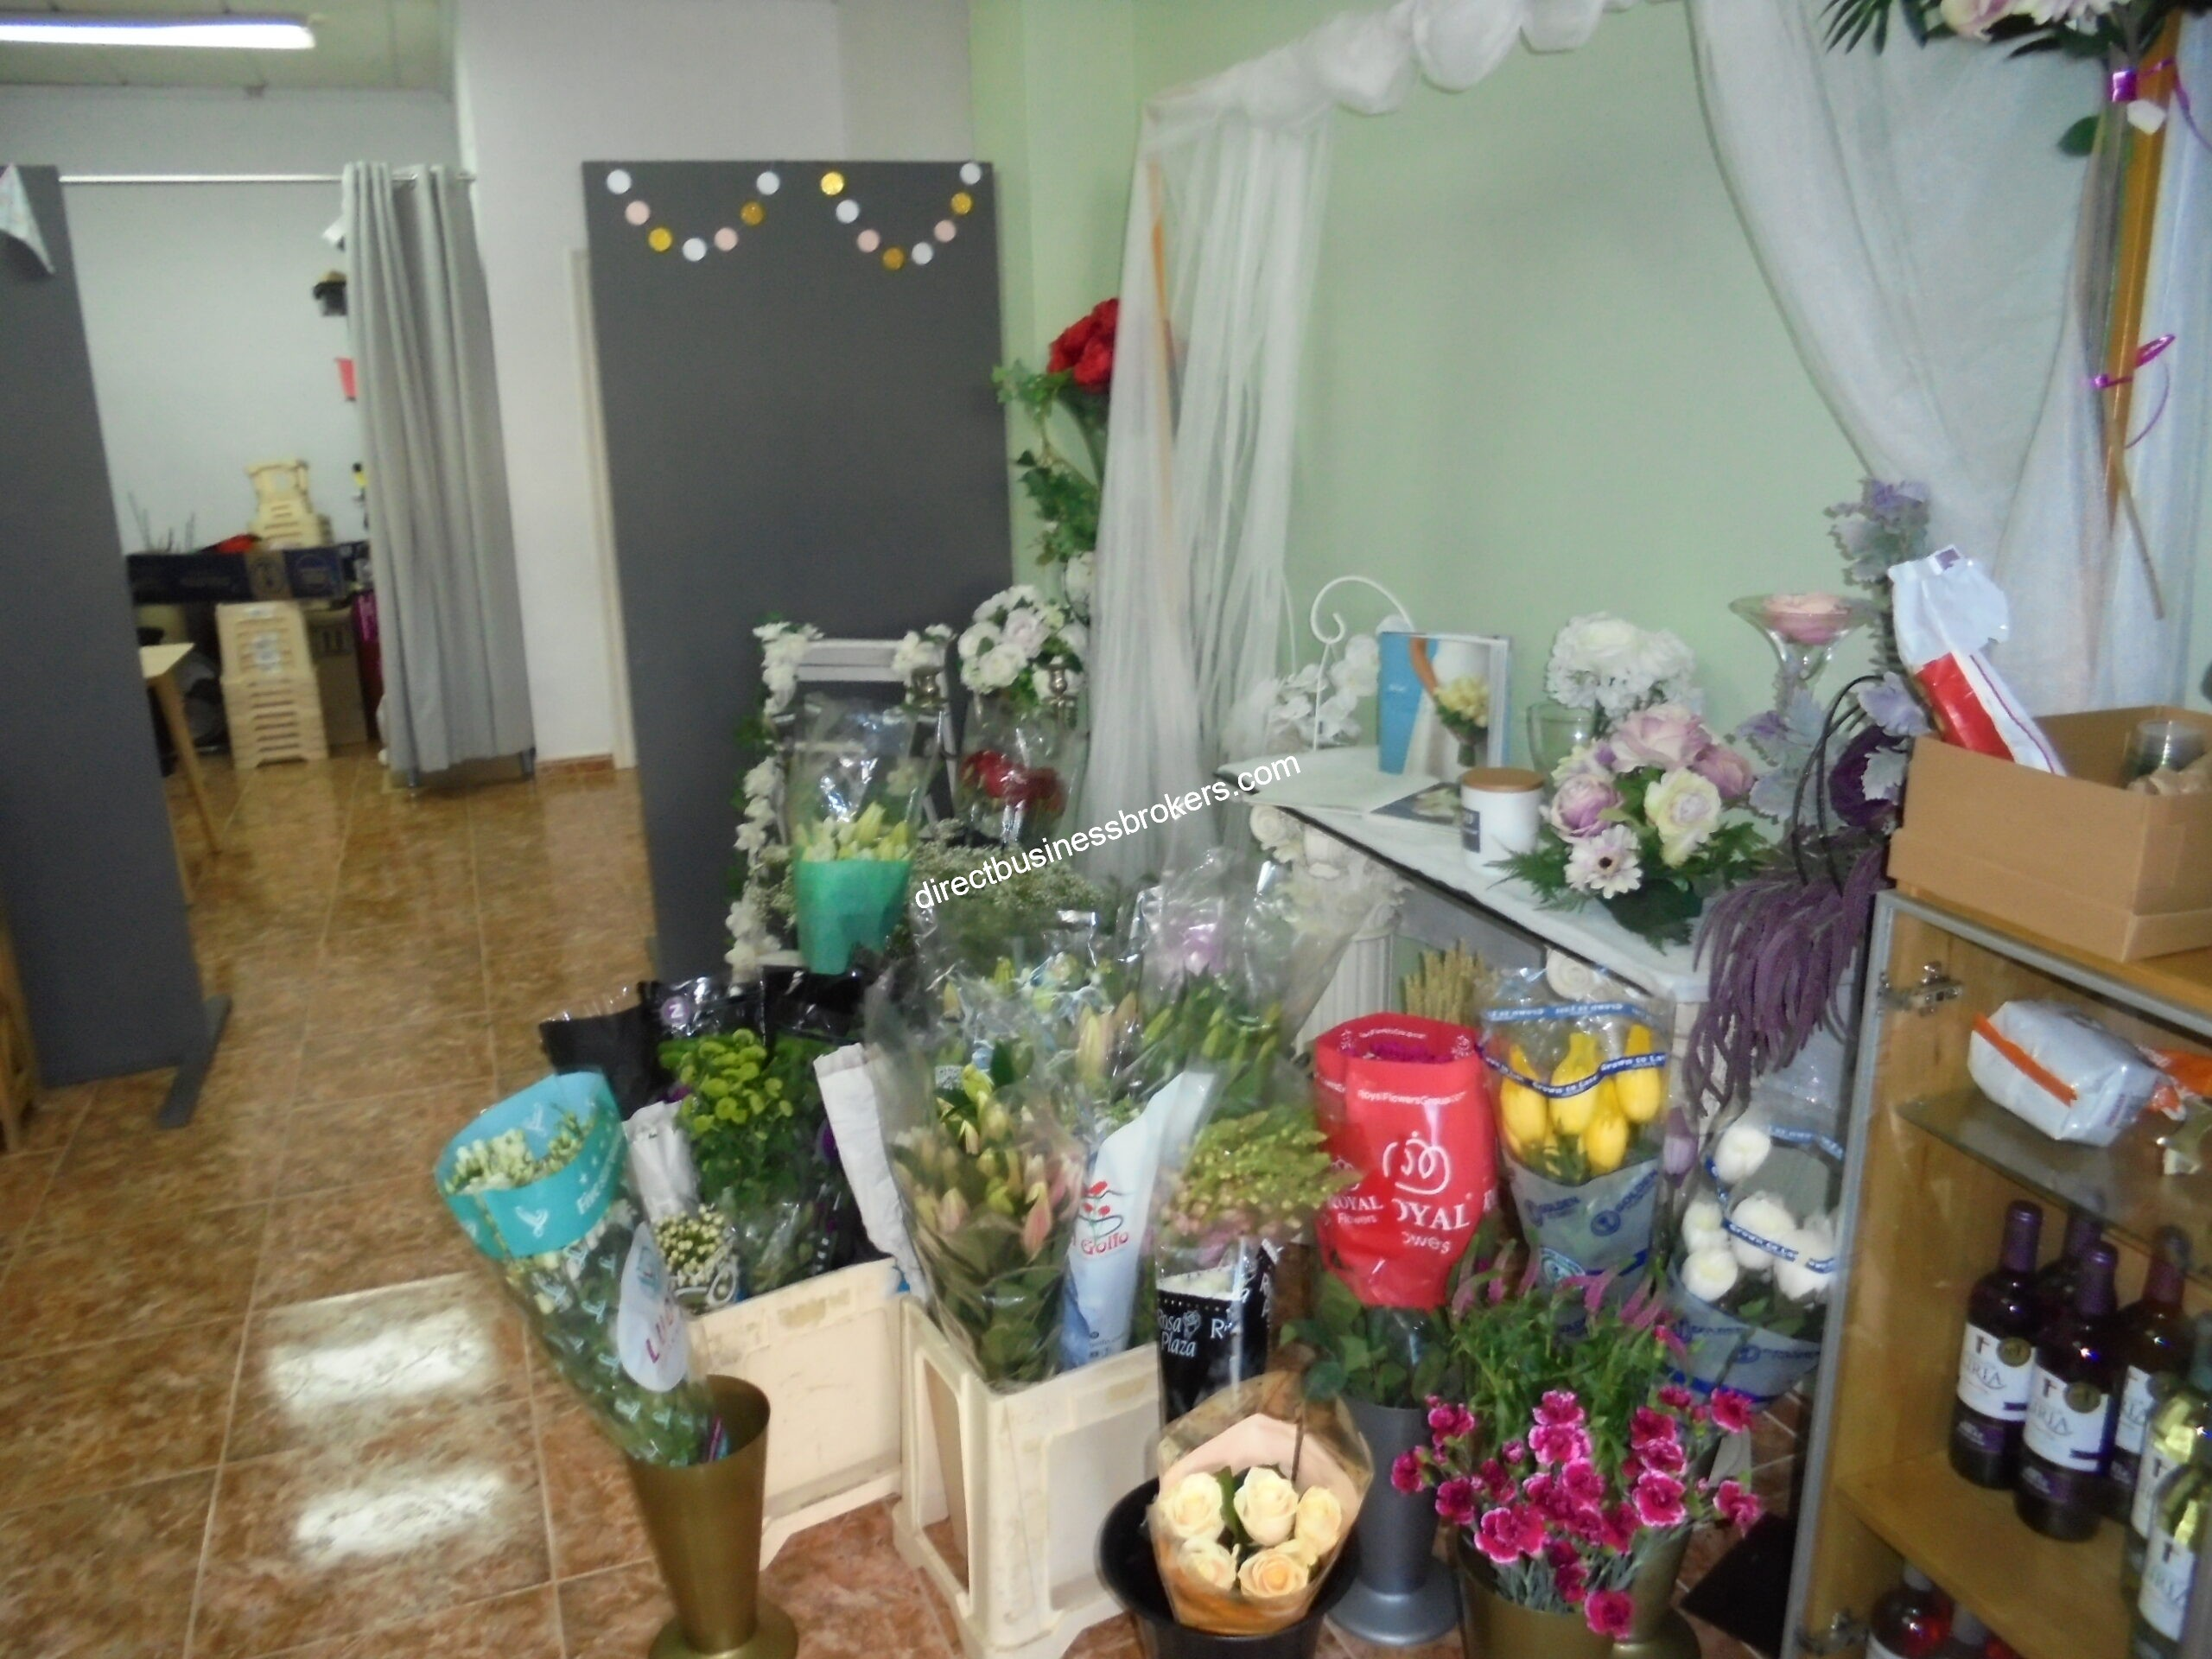 Relay Busy Florists – Main Road Position (1291)